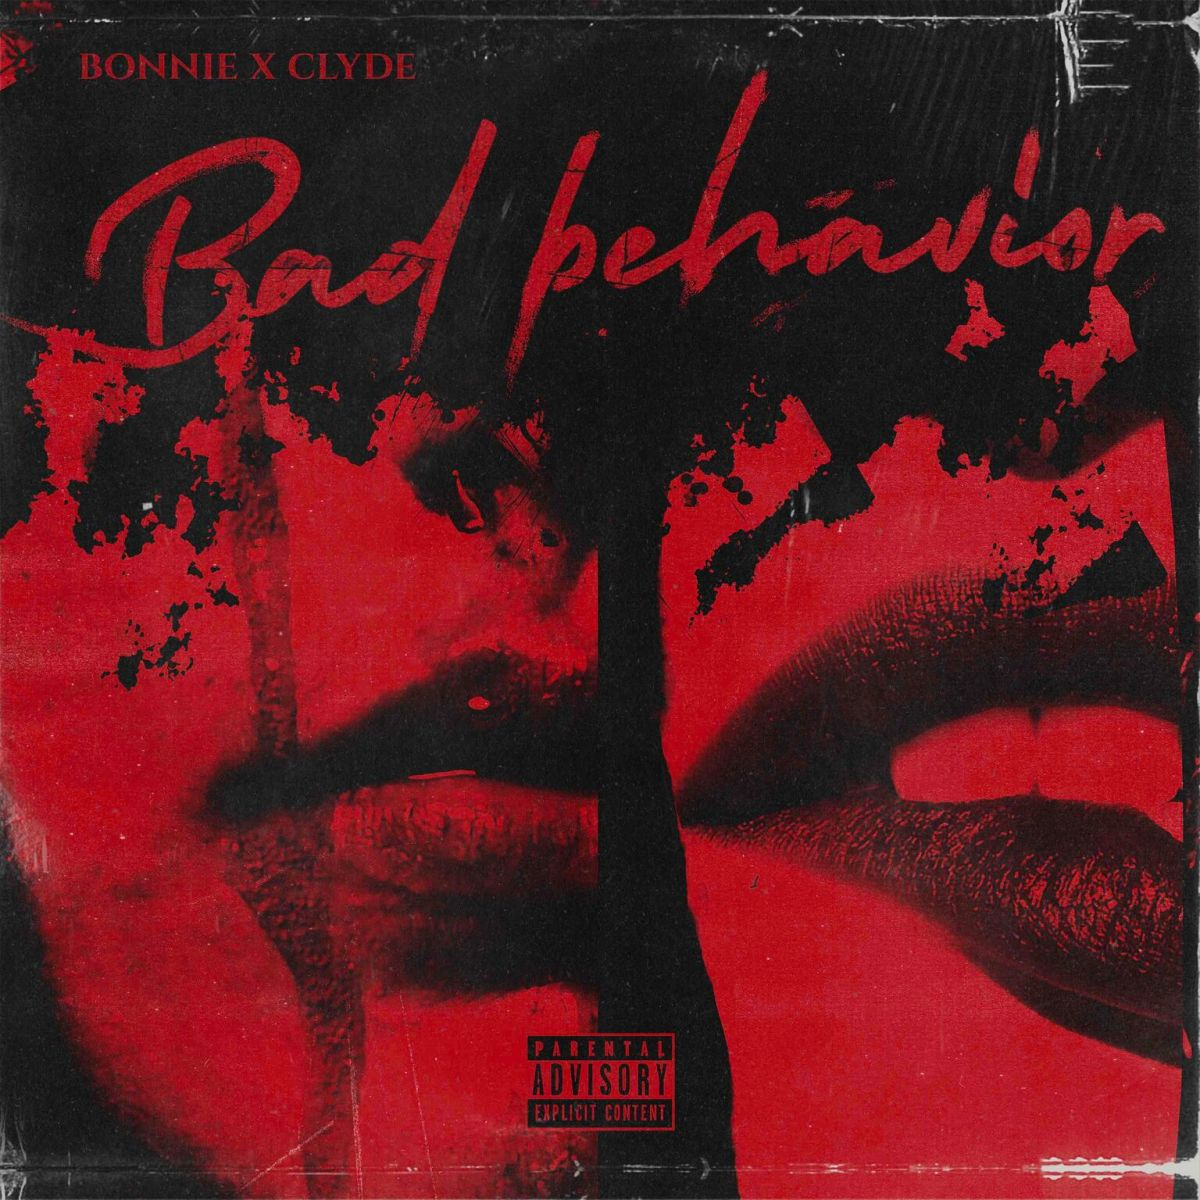 BONNIE X CLYDE BAD BEHAVIOR ALBUM ART